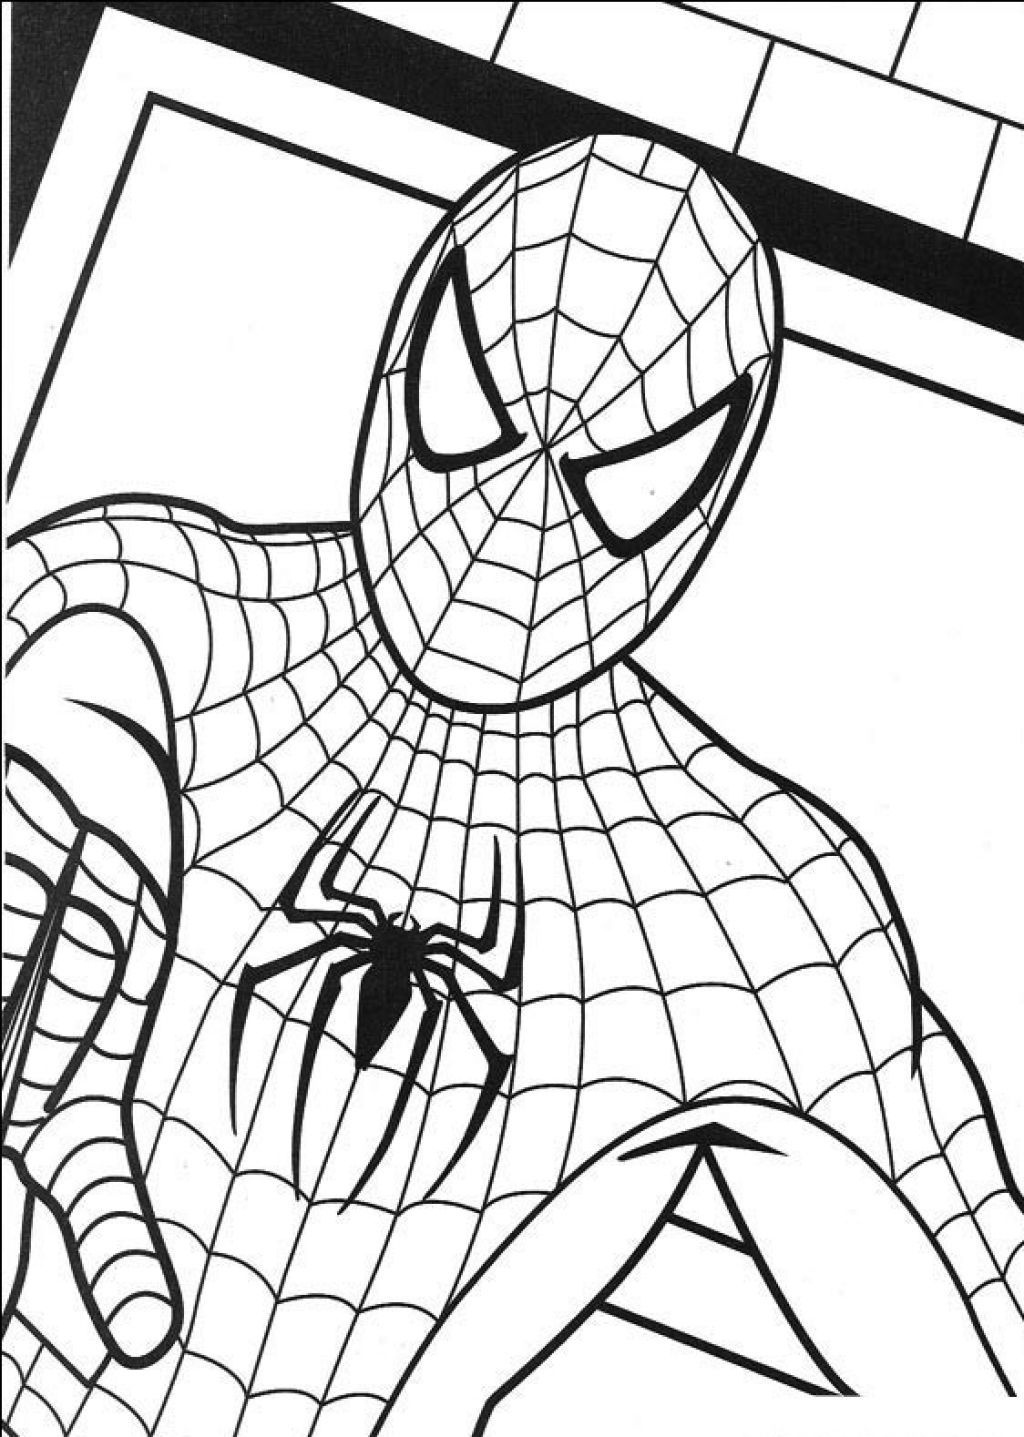 Free Printable Spiderman Coloring Pages For Kids | Coloring Pages - Free Printable Spiderman Pictures